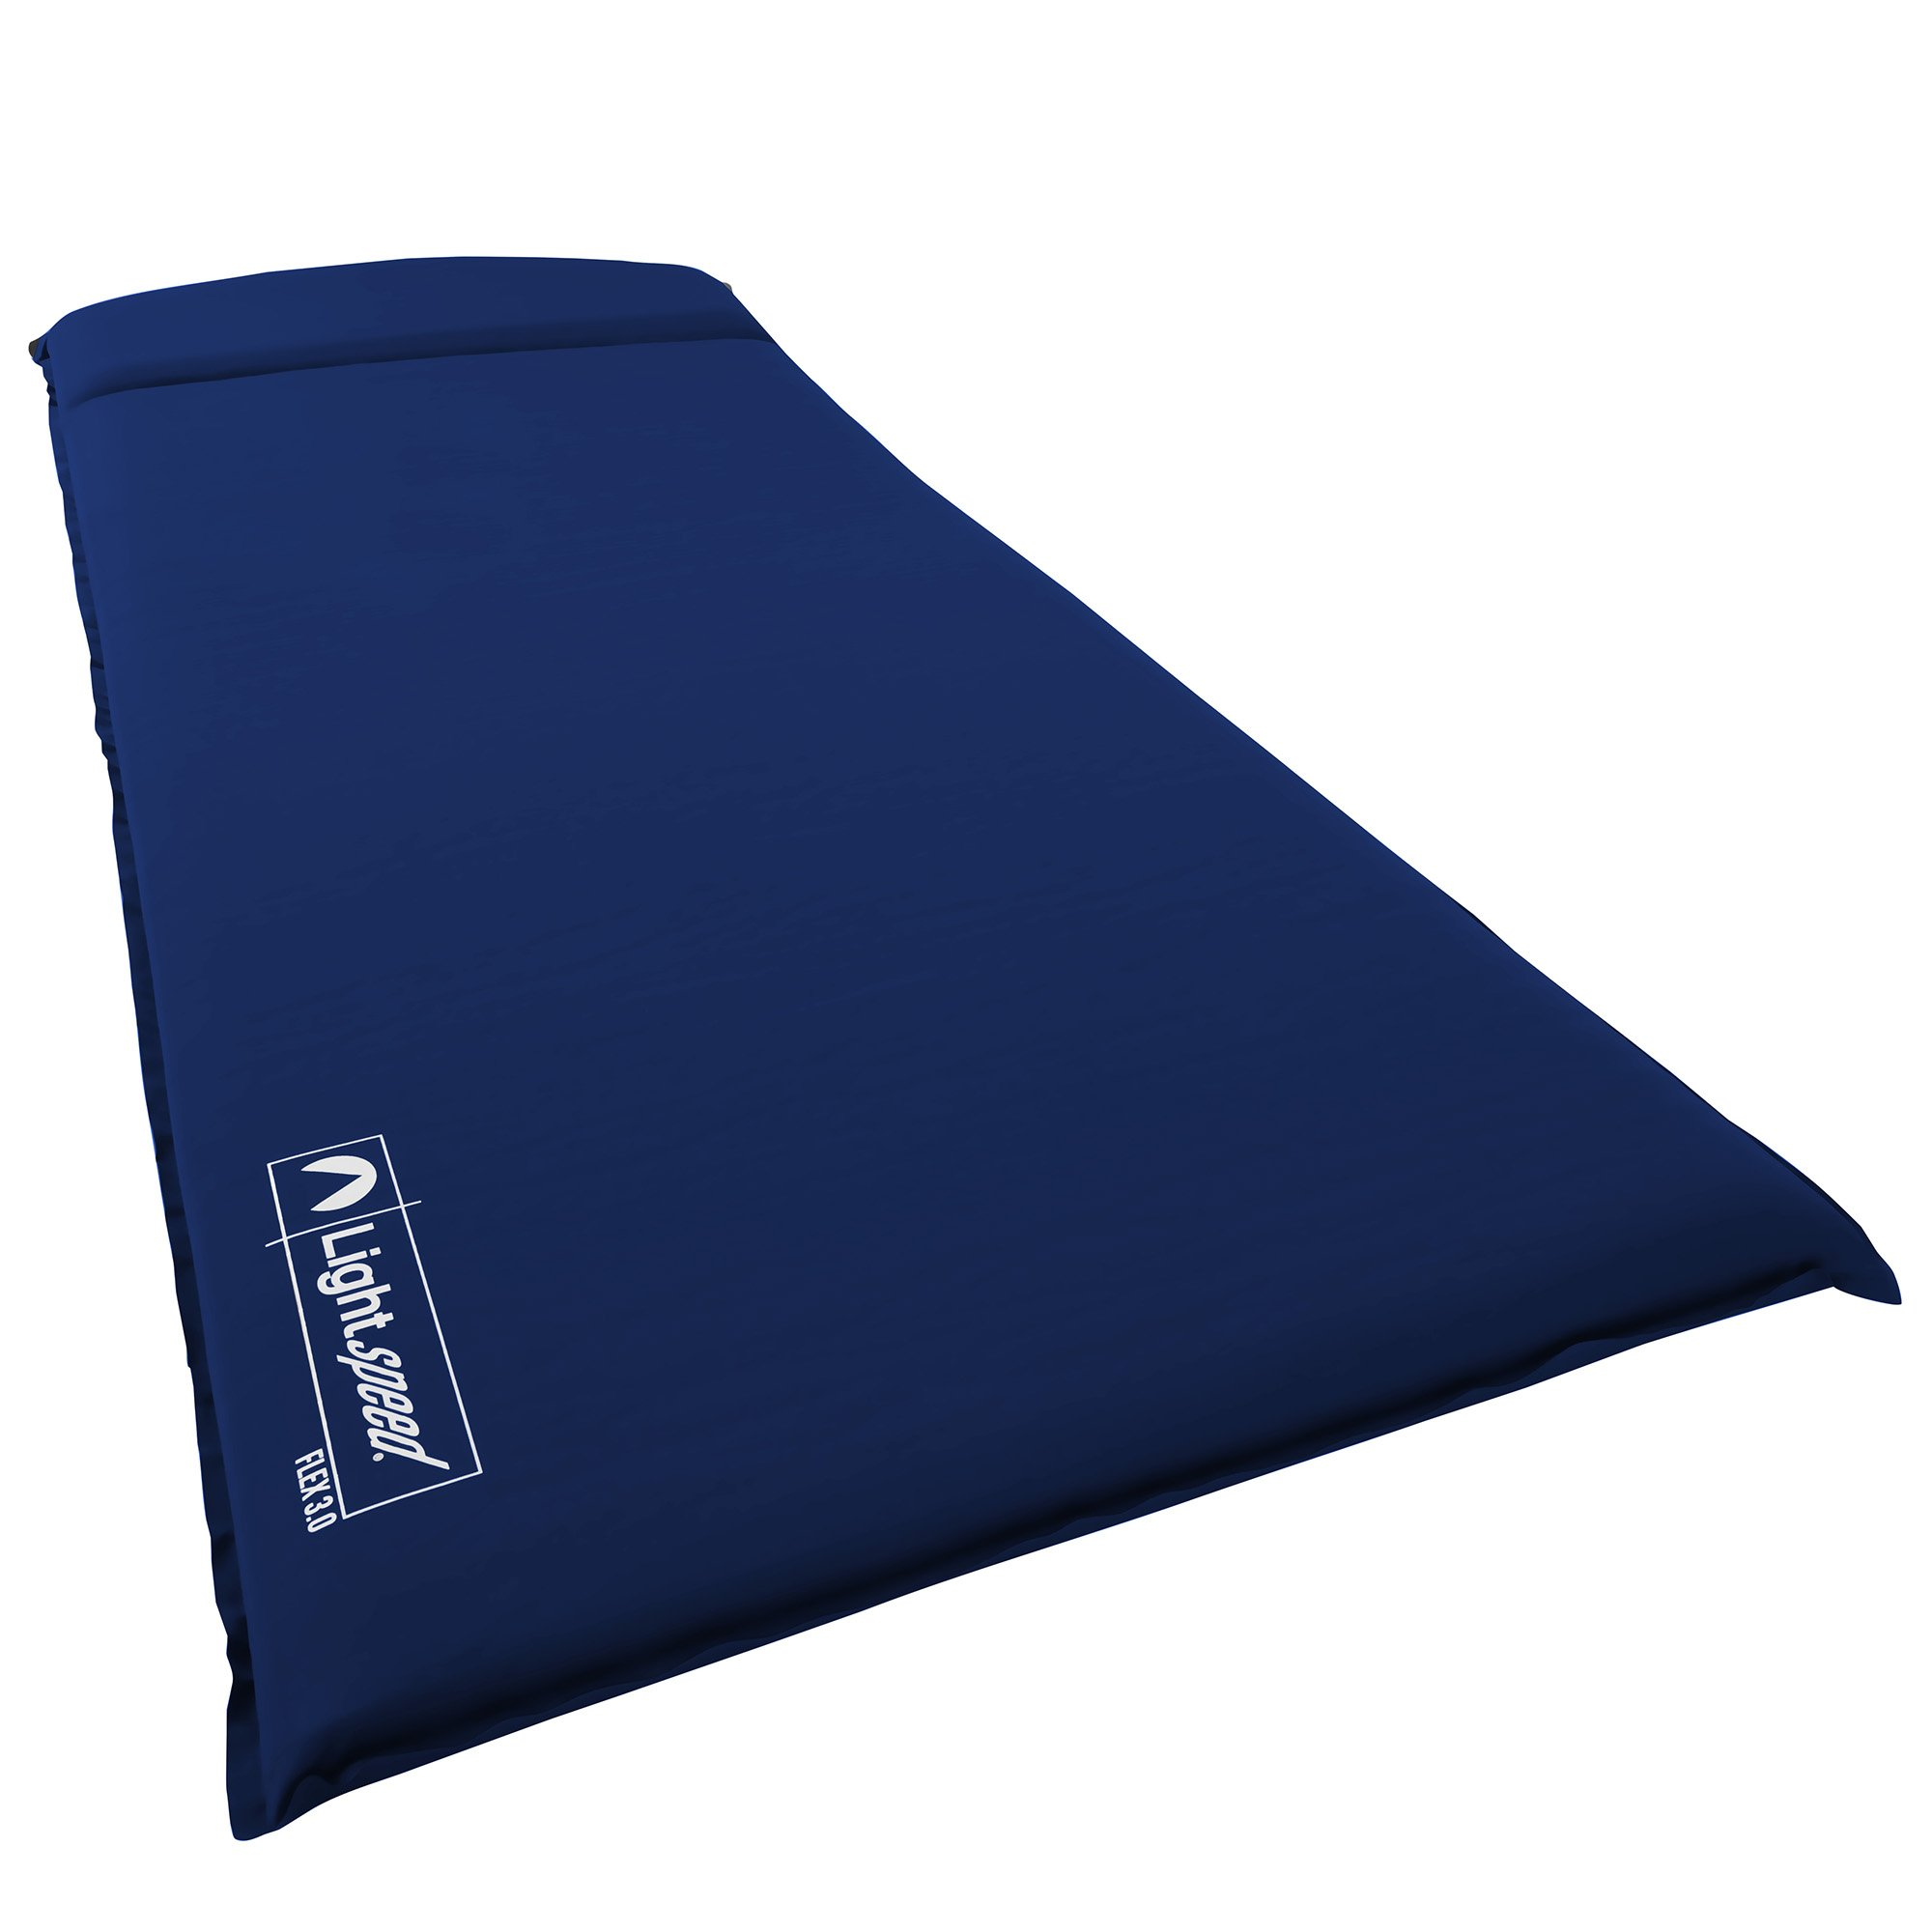 arpenaz zh r comfort mat p decathlon mattress self camping inflating person